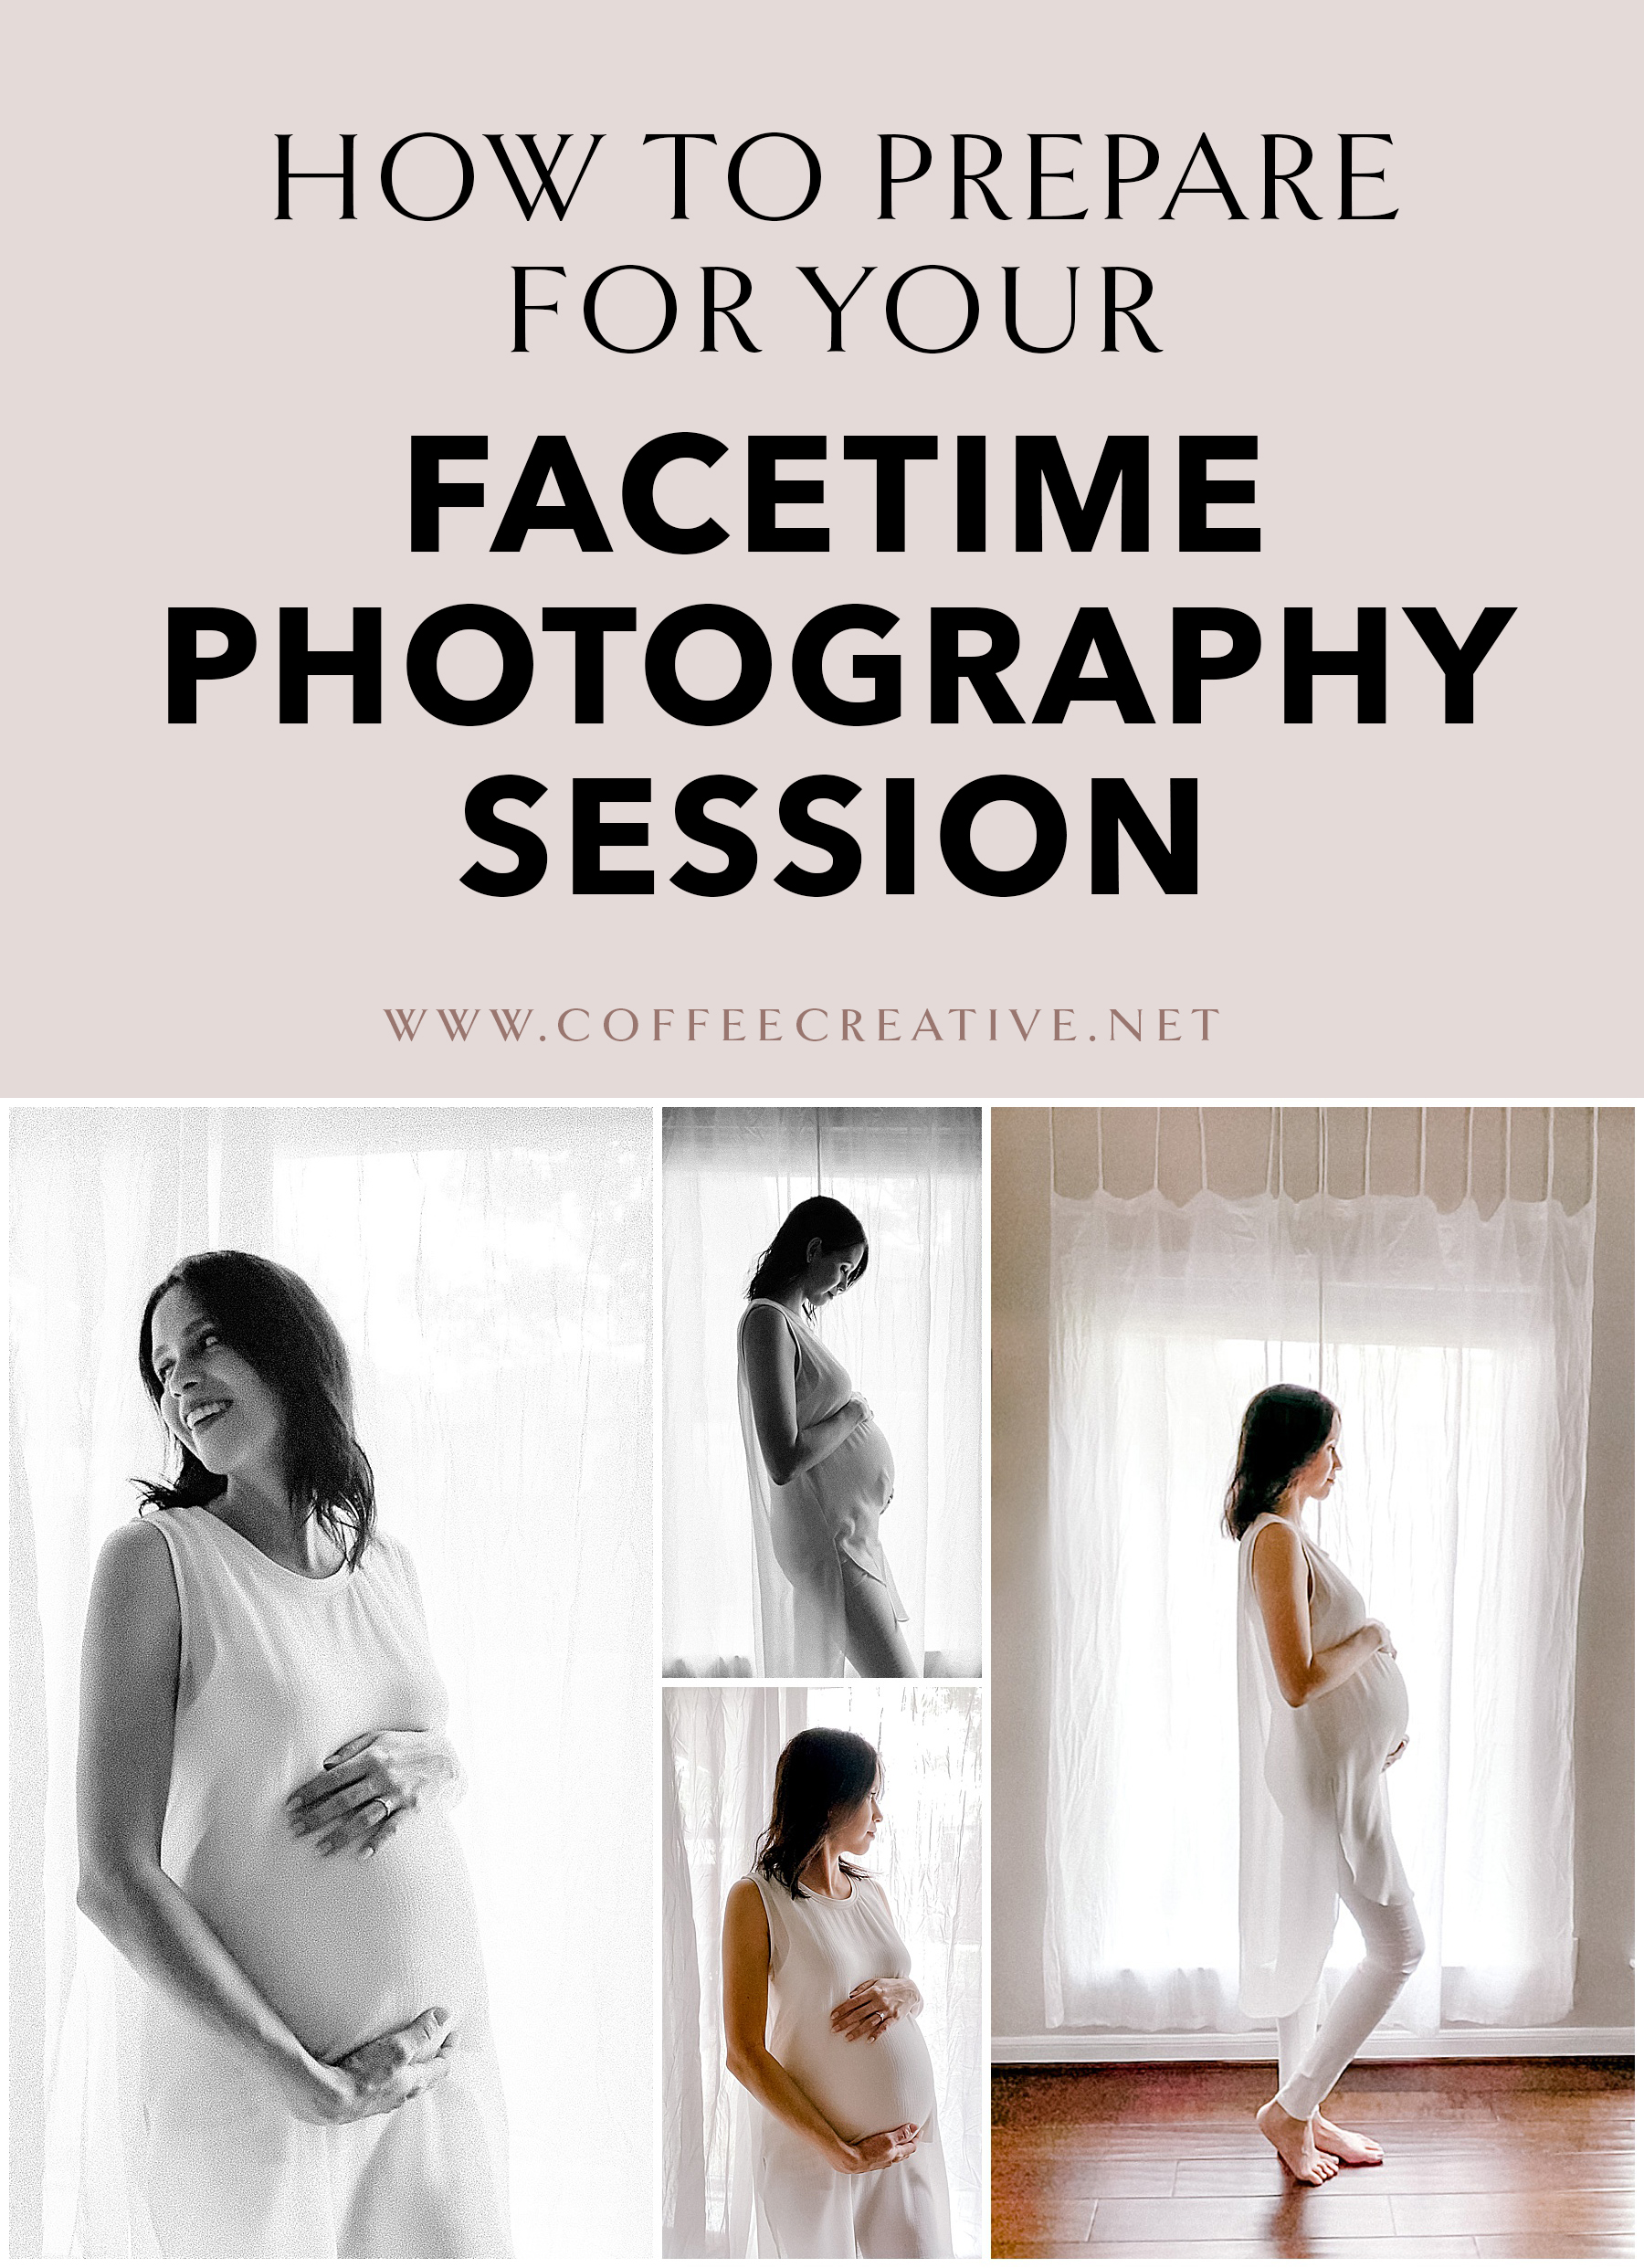 Facetime Maternity session, Facetime newborn session, maternity facetime photography, facetime photo session, facetime photographer, el paso photographer, el paso photography, facetime maternity photography